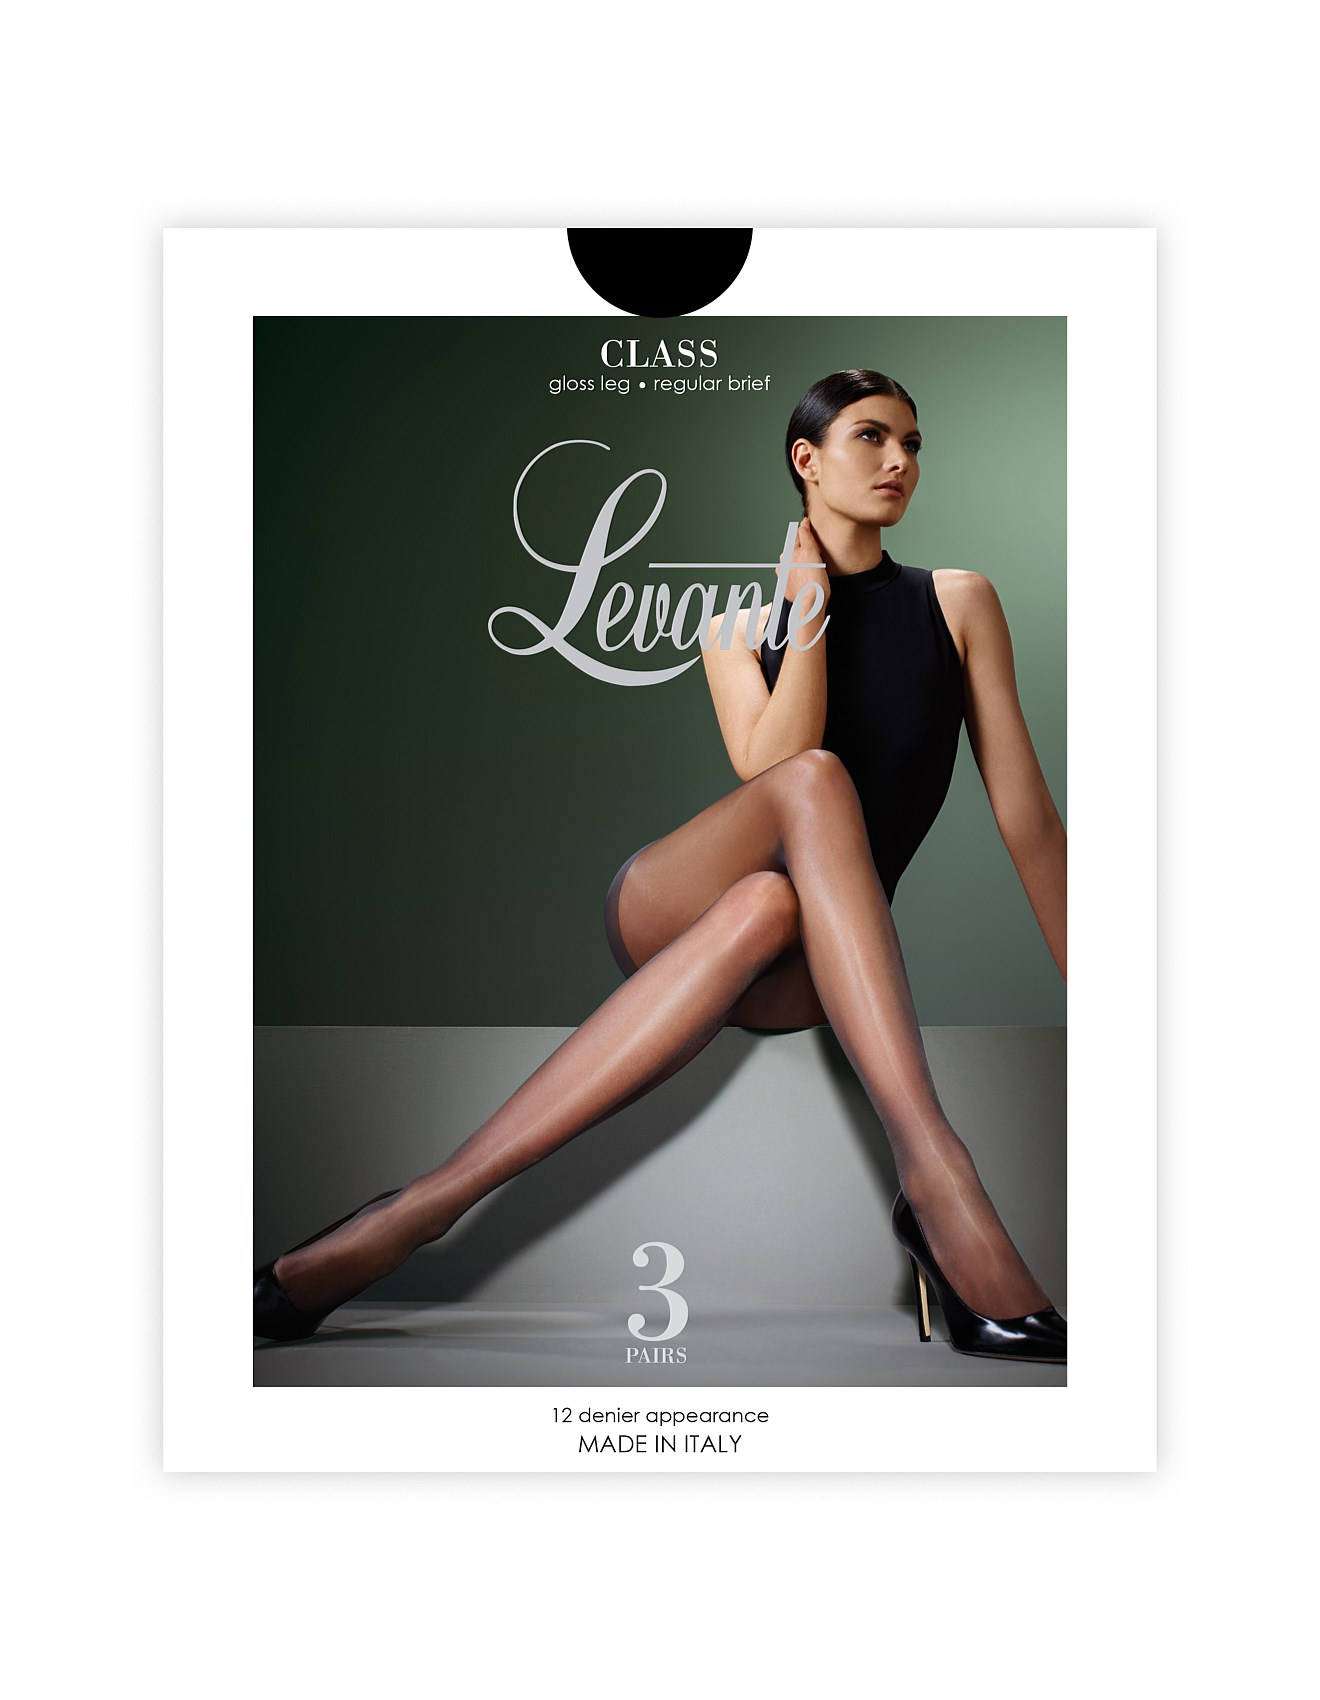 Pantyhose as sleepwear